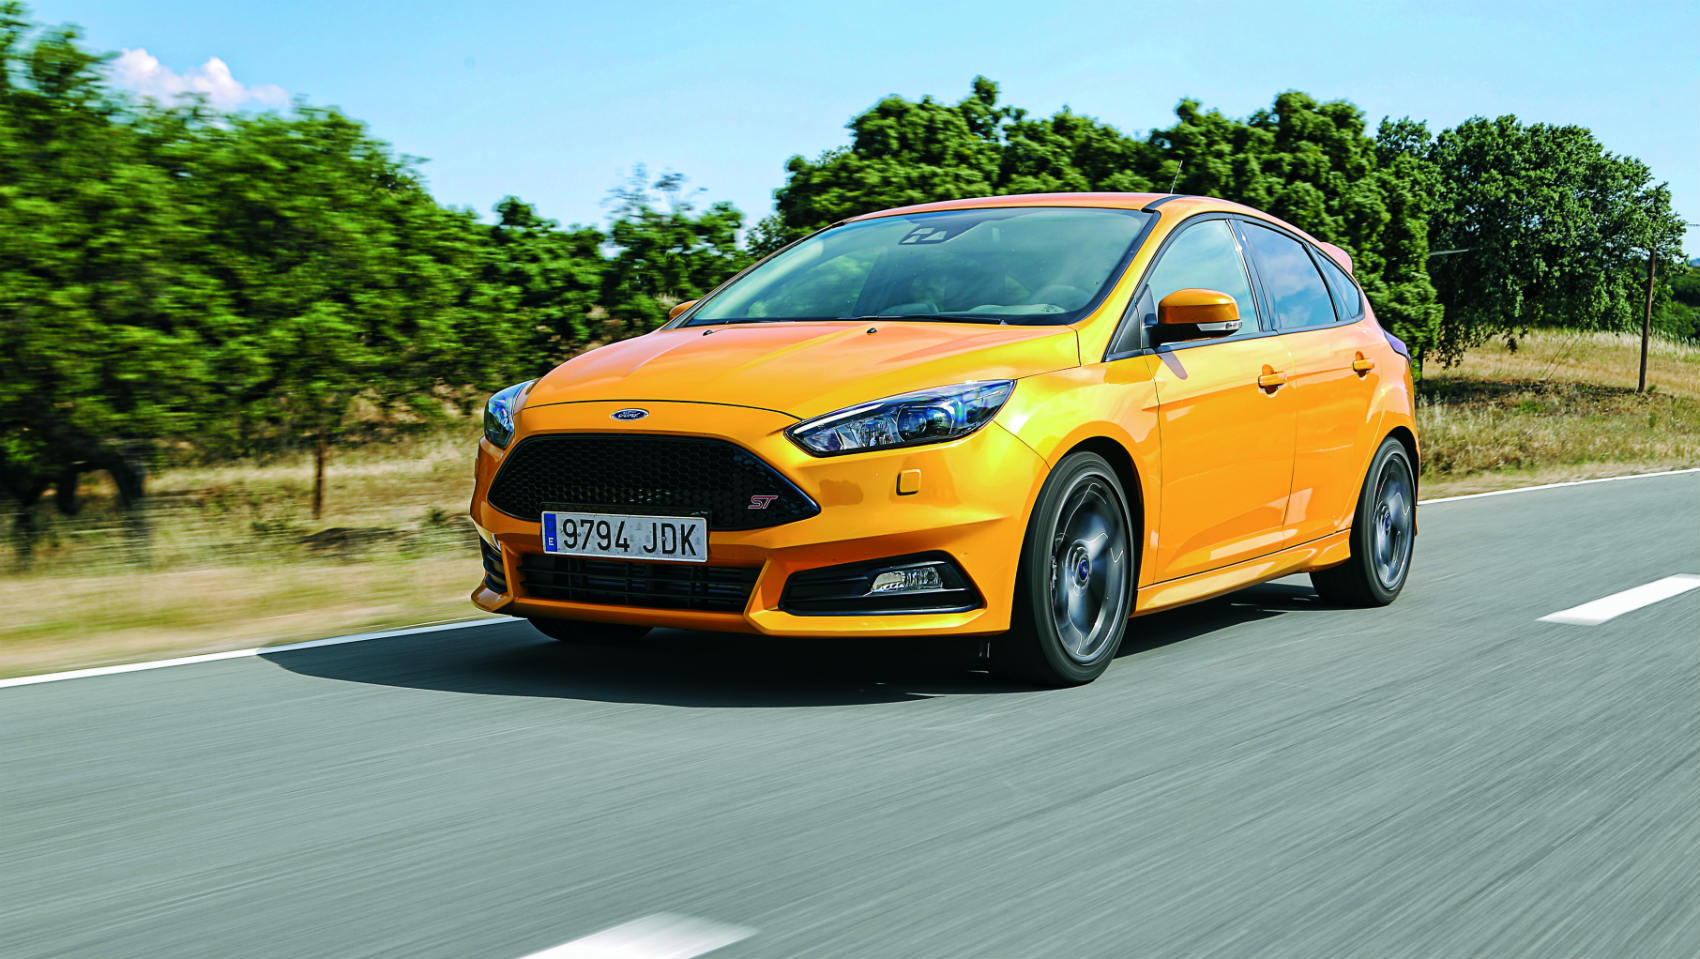 prueba ford focus st 250 cv cargados de emociones. Black Bedroom Furniture Sets. Home Design Ideas